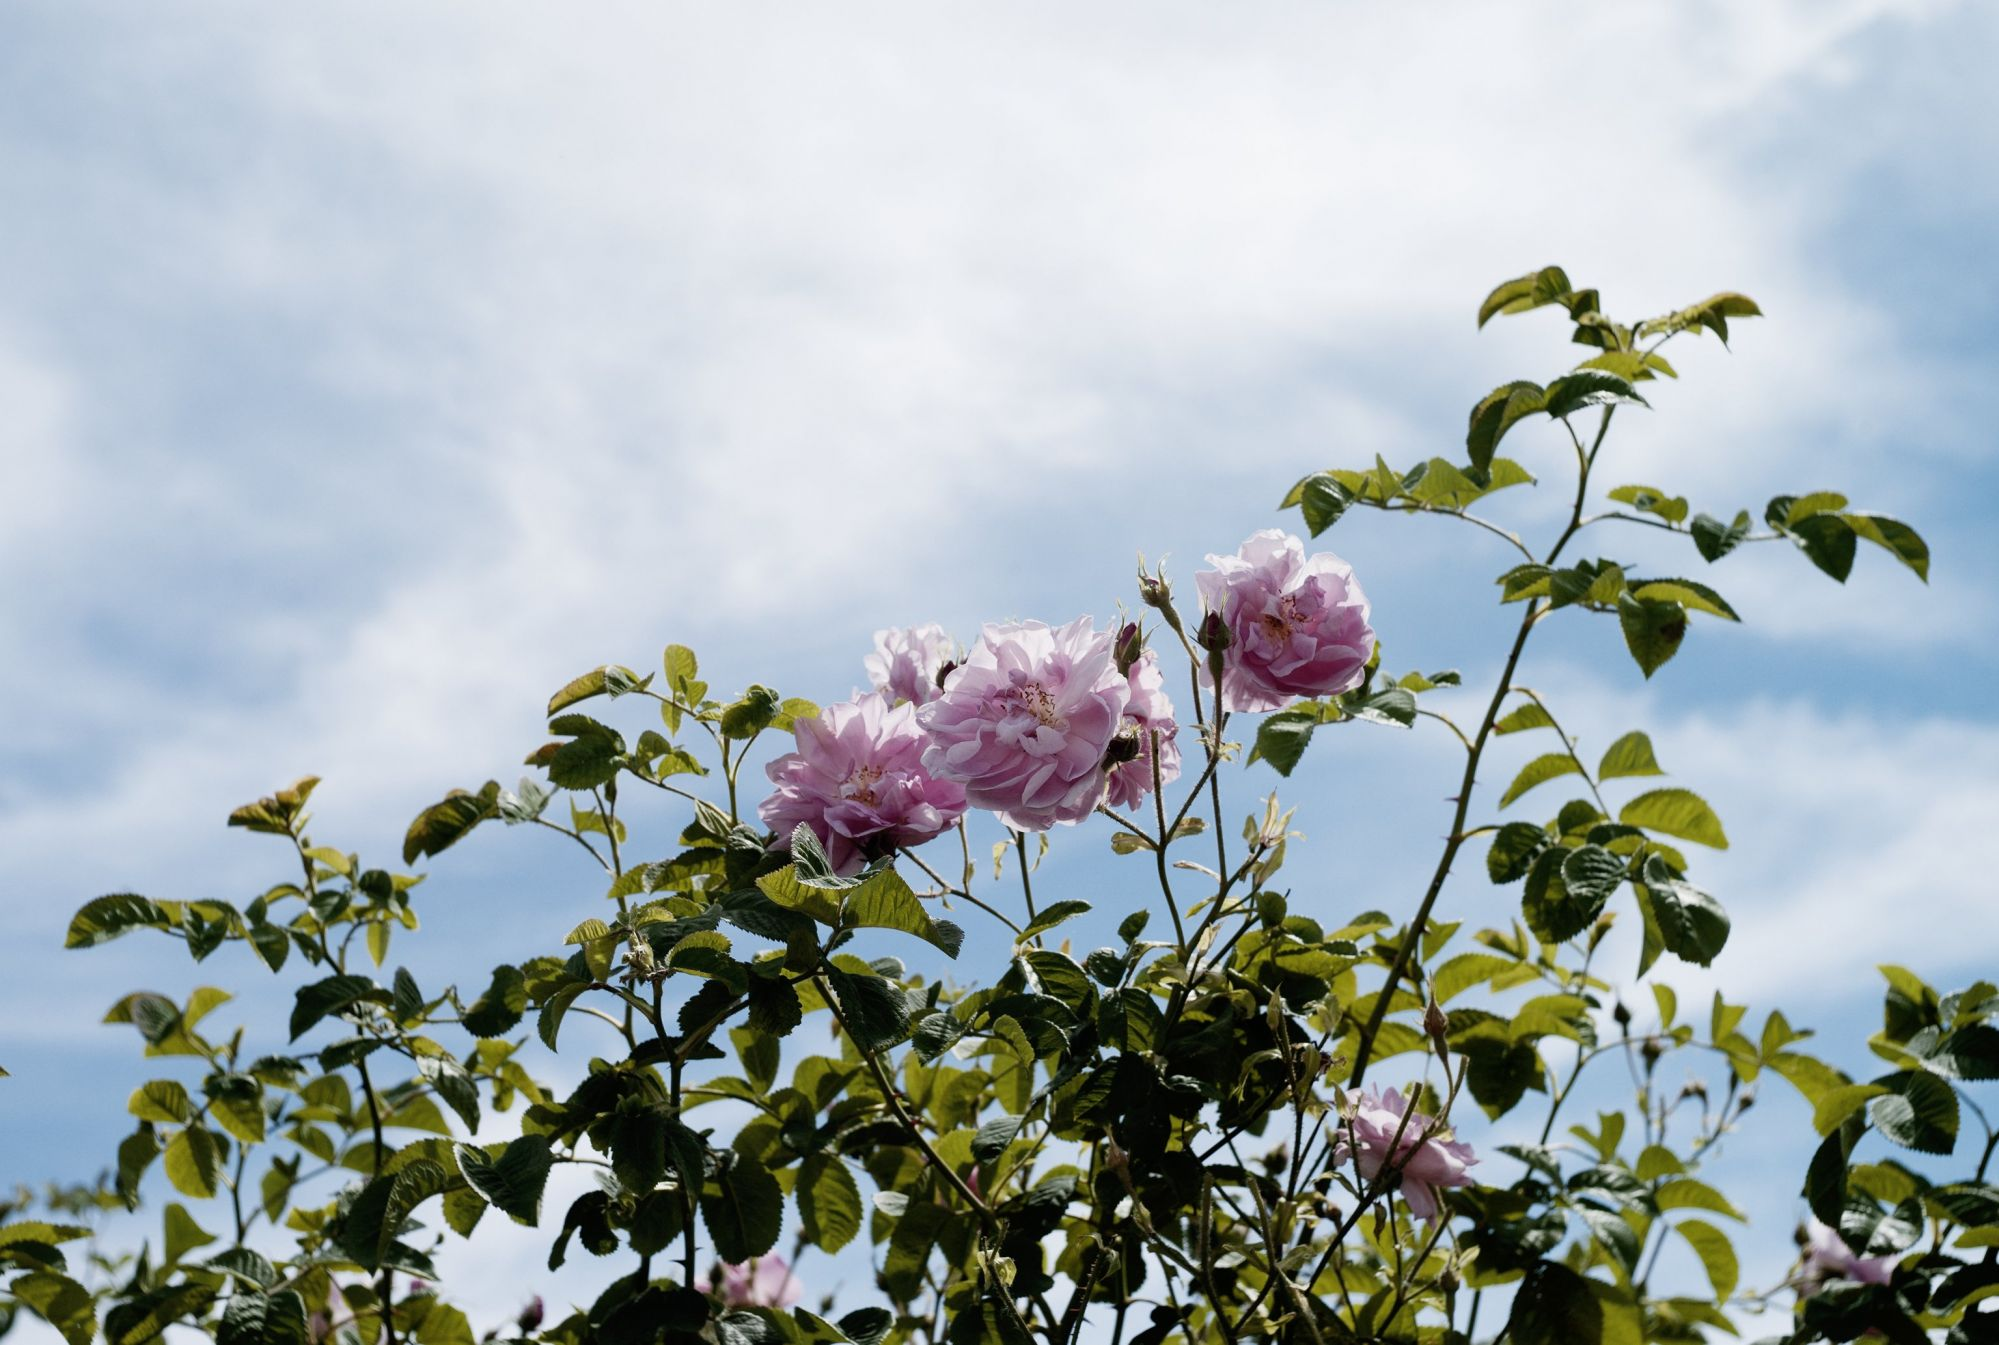 May Rose: Discover The Key Ingredient Behind Chanel No. 5